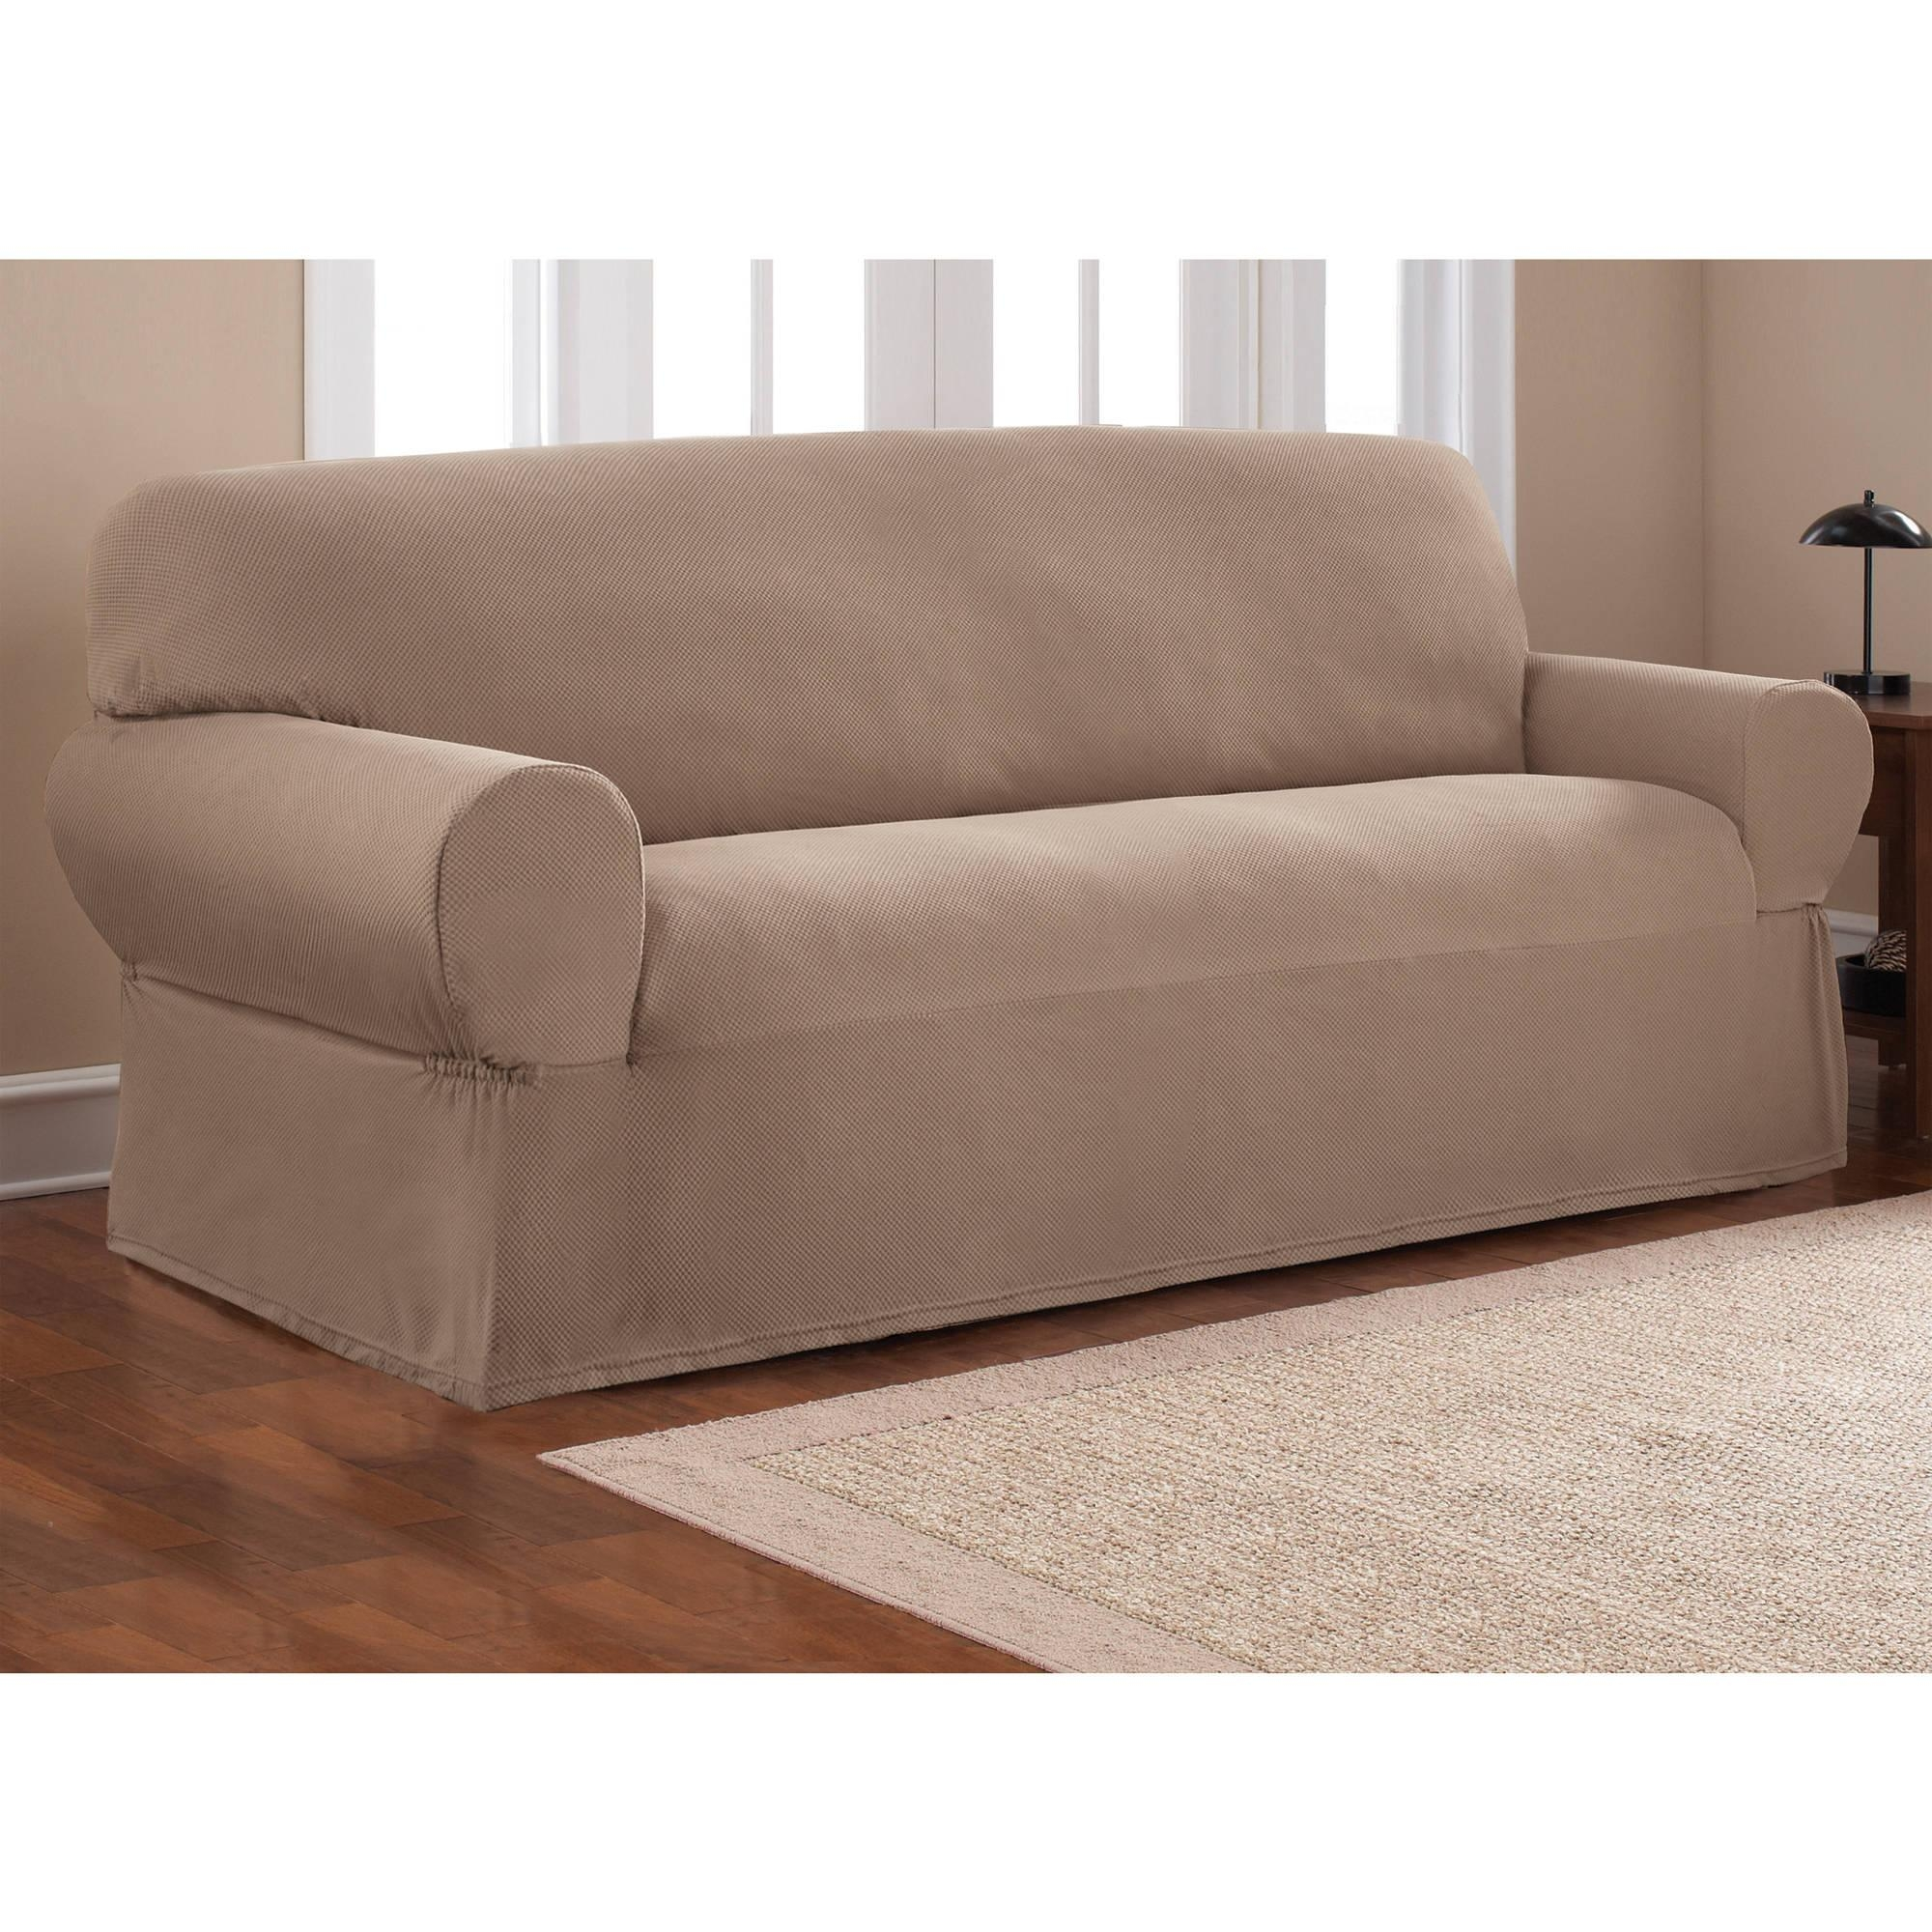 Furniture: Couch Slip Covers | Stretch Sofa Covers | Recliner Cover Intended For Stretch Covers For Recliners (Image 11 of 20)